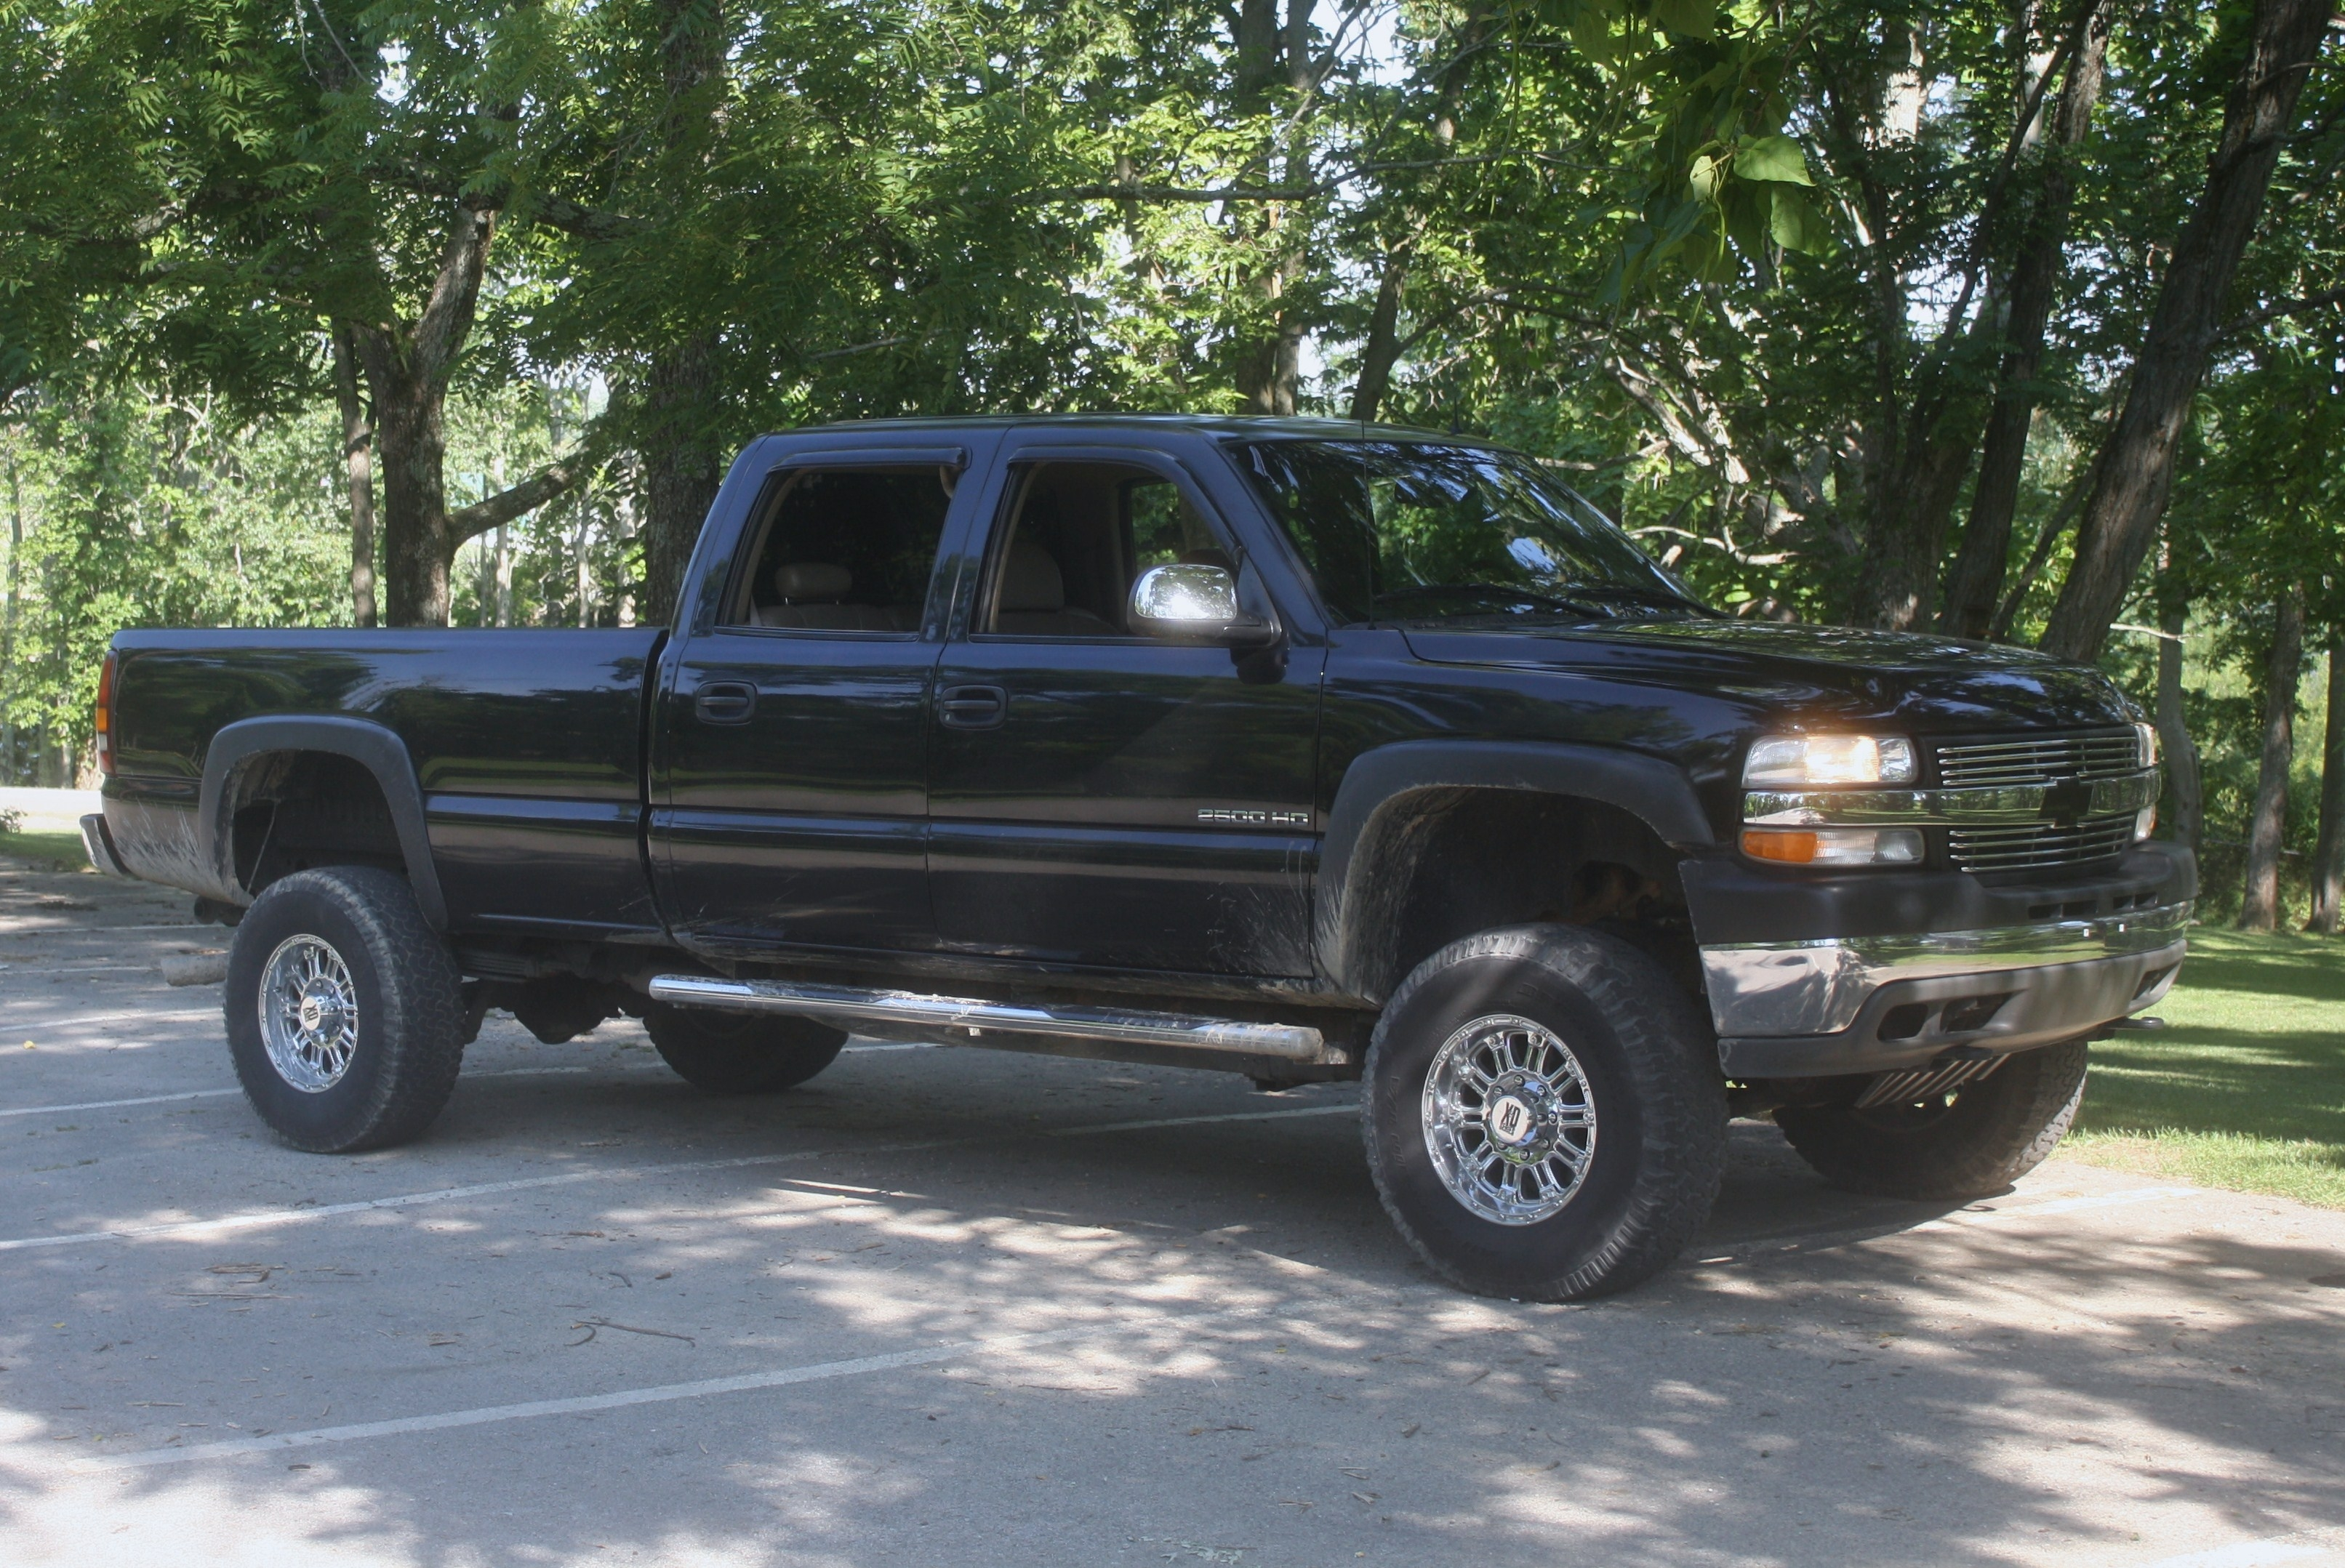 wisoserious 2002 chevrolet silverado 2500 hd crew cab. Black Bedroom Furniture Sets. Home Design Ideas